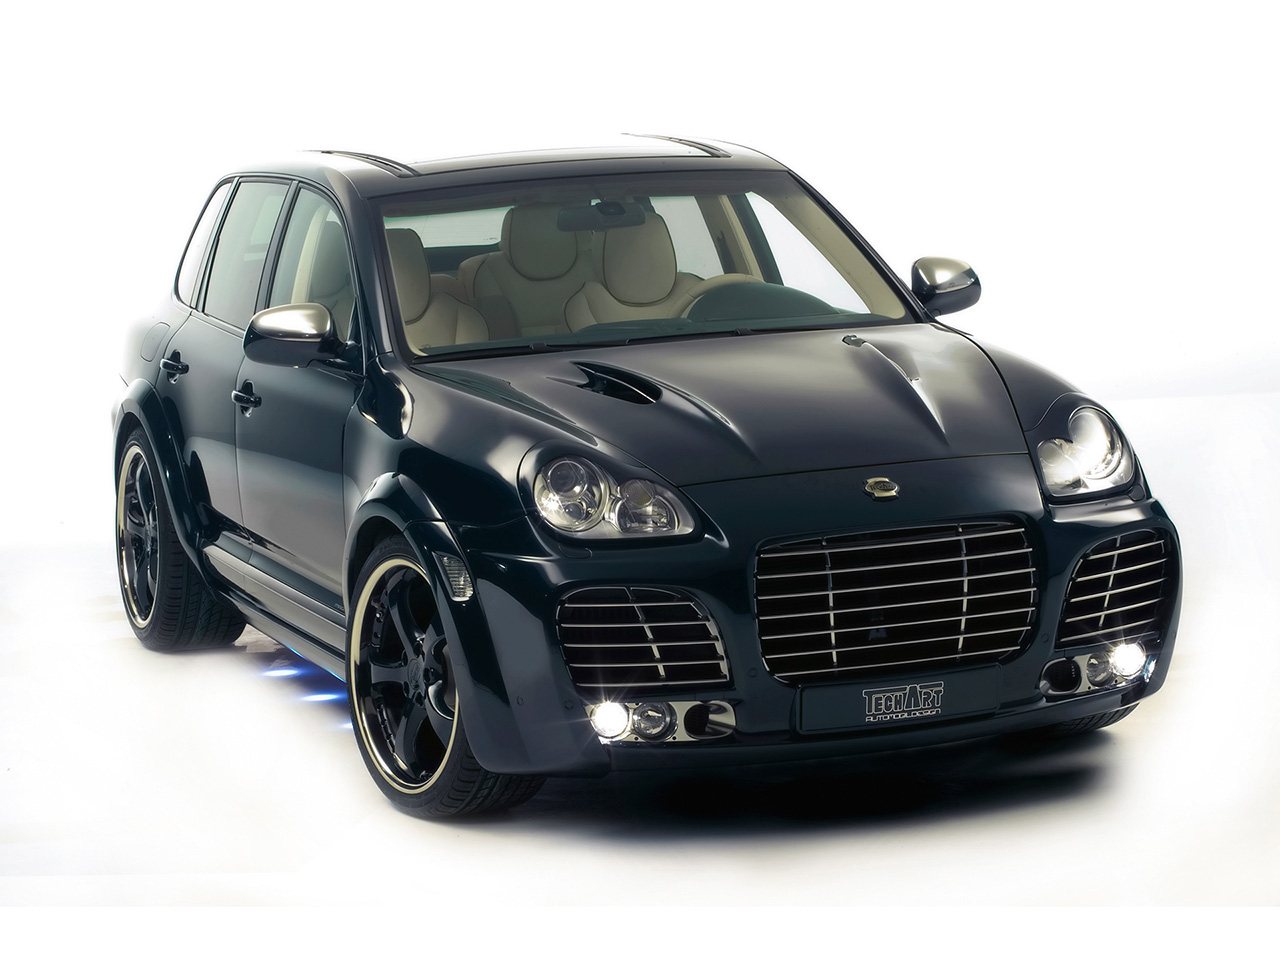 techart magnum based on porsche cayenne turbo car tuning styling. Black Bedroom Furniture Sets. Home Design Ideas